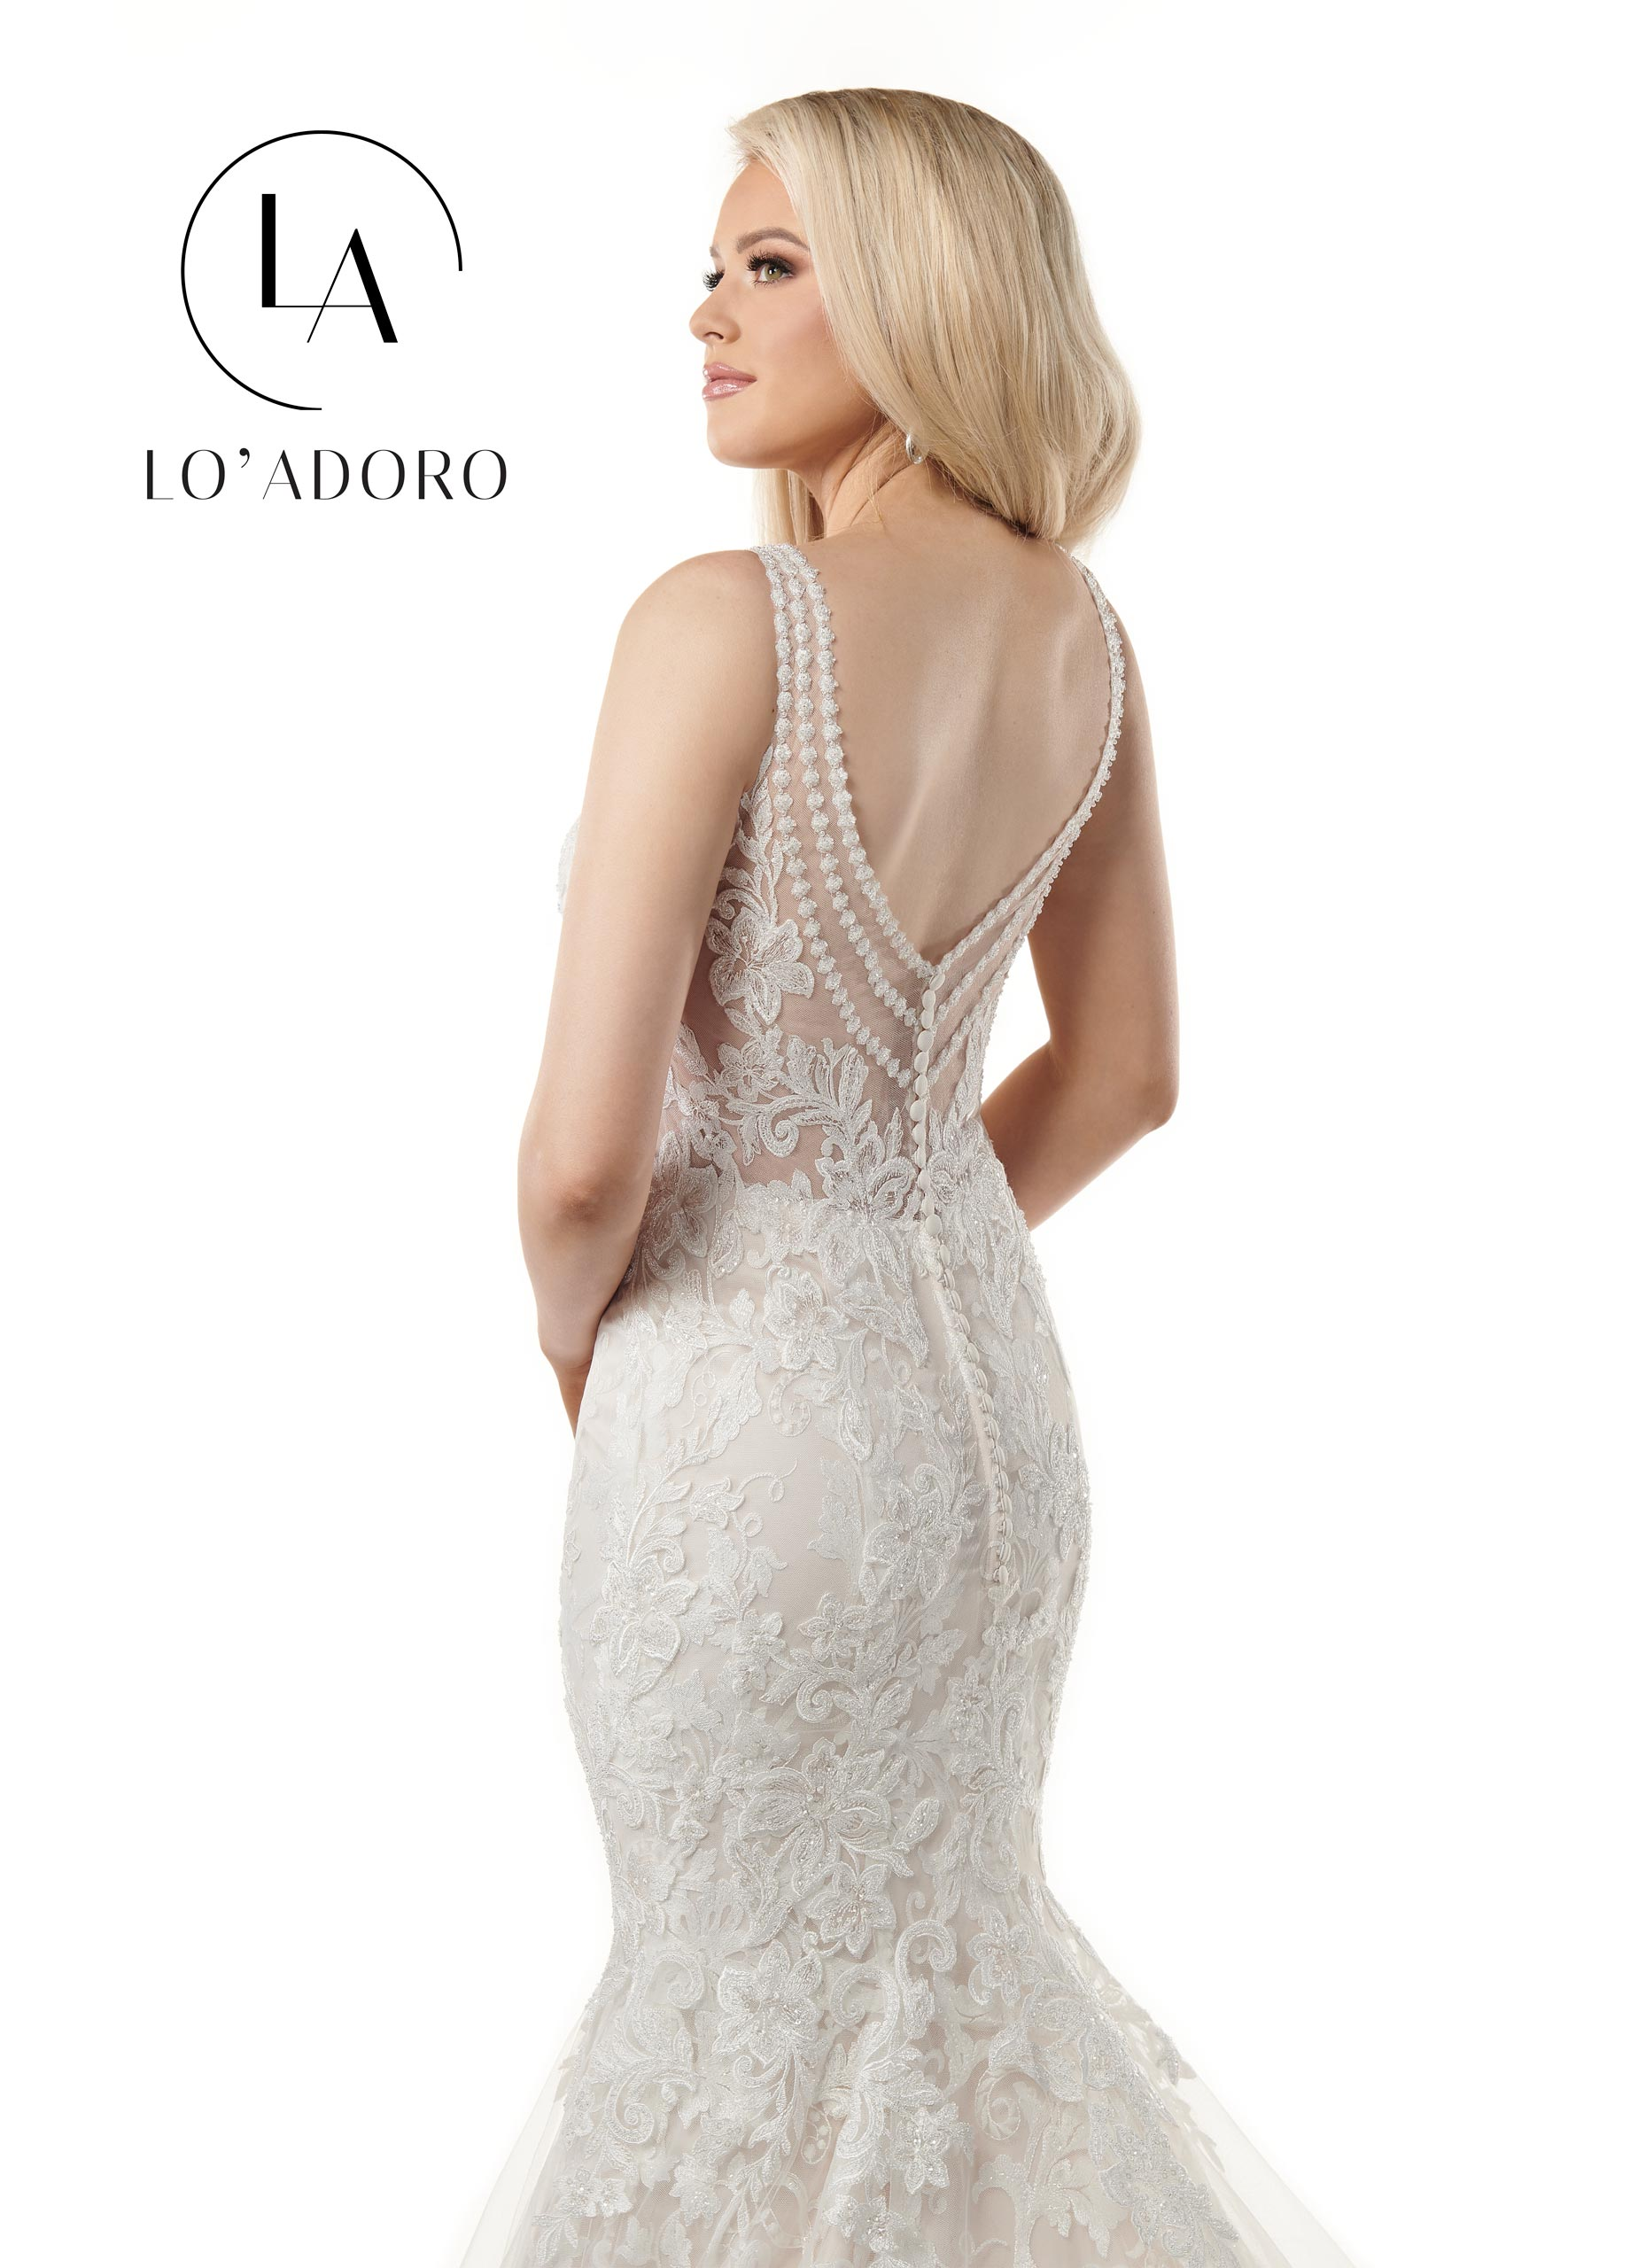 V-Neck Mermaid Lo' Adoro Bridal in White Color